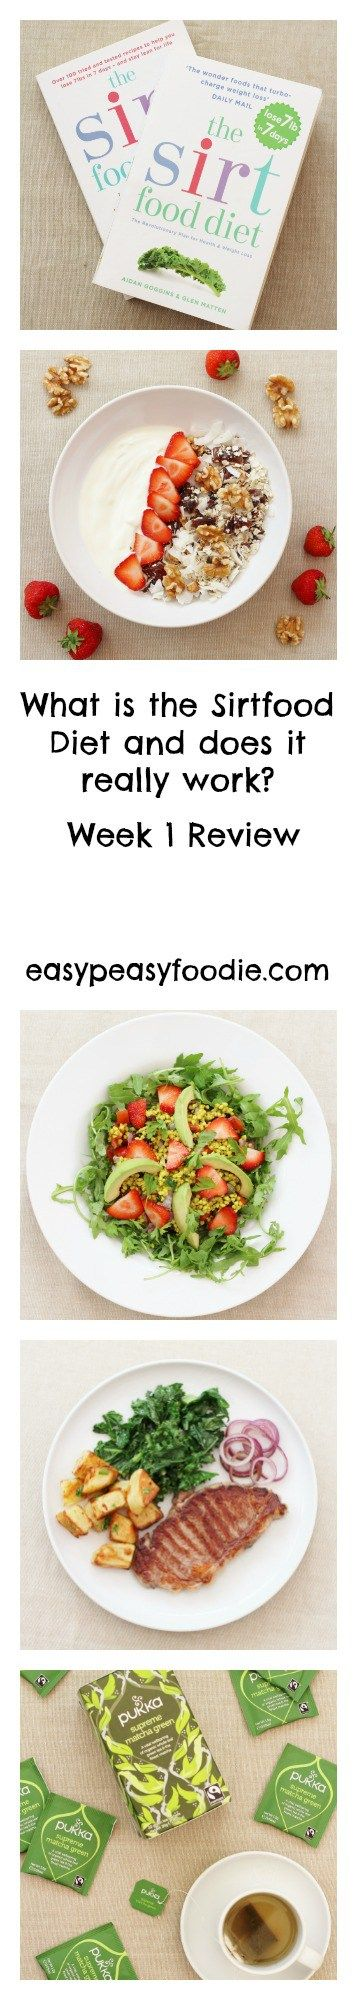 24 best sirtfood diet images on pinterest diet recipes healthy the sirtfood diet green juice salad forumfinder Image collections